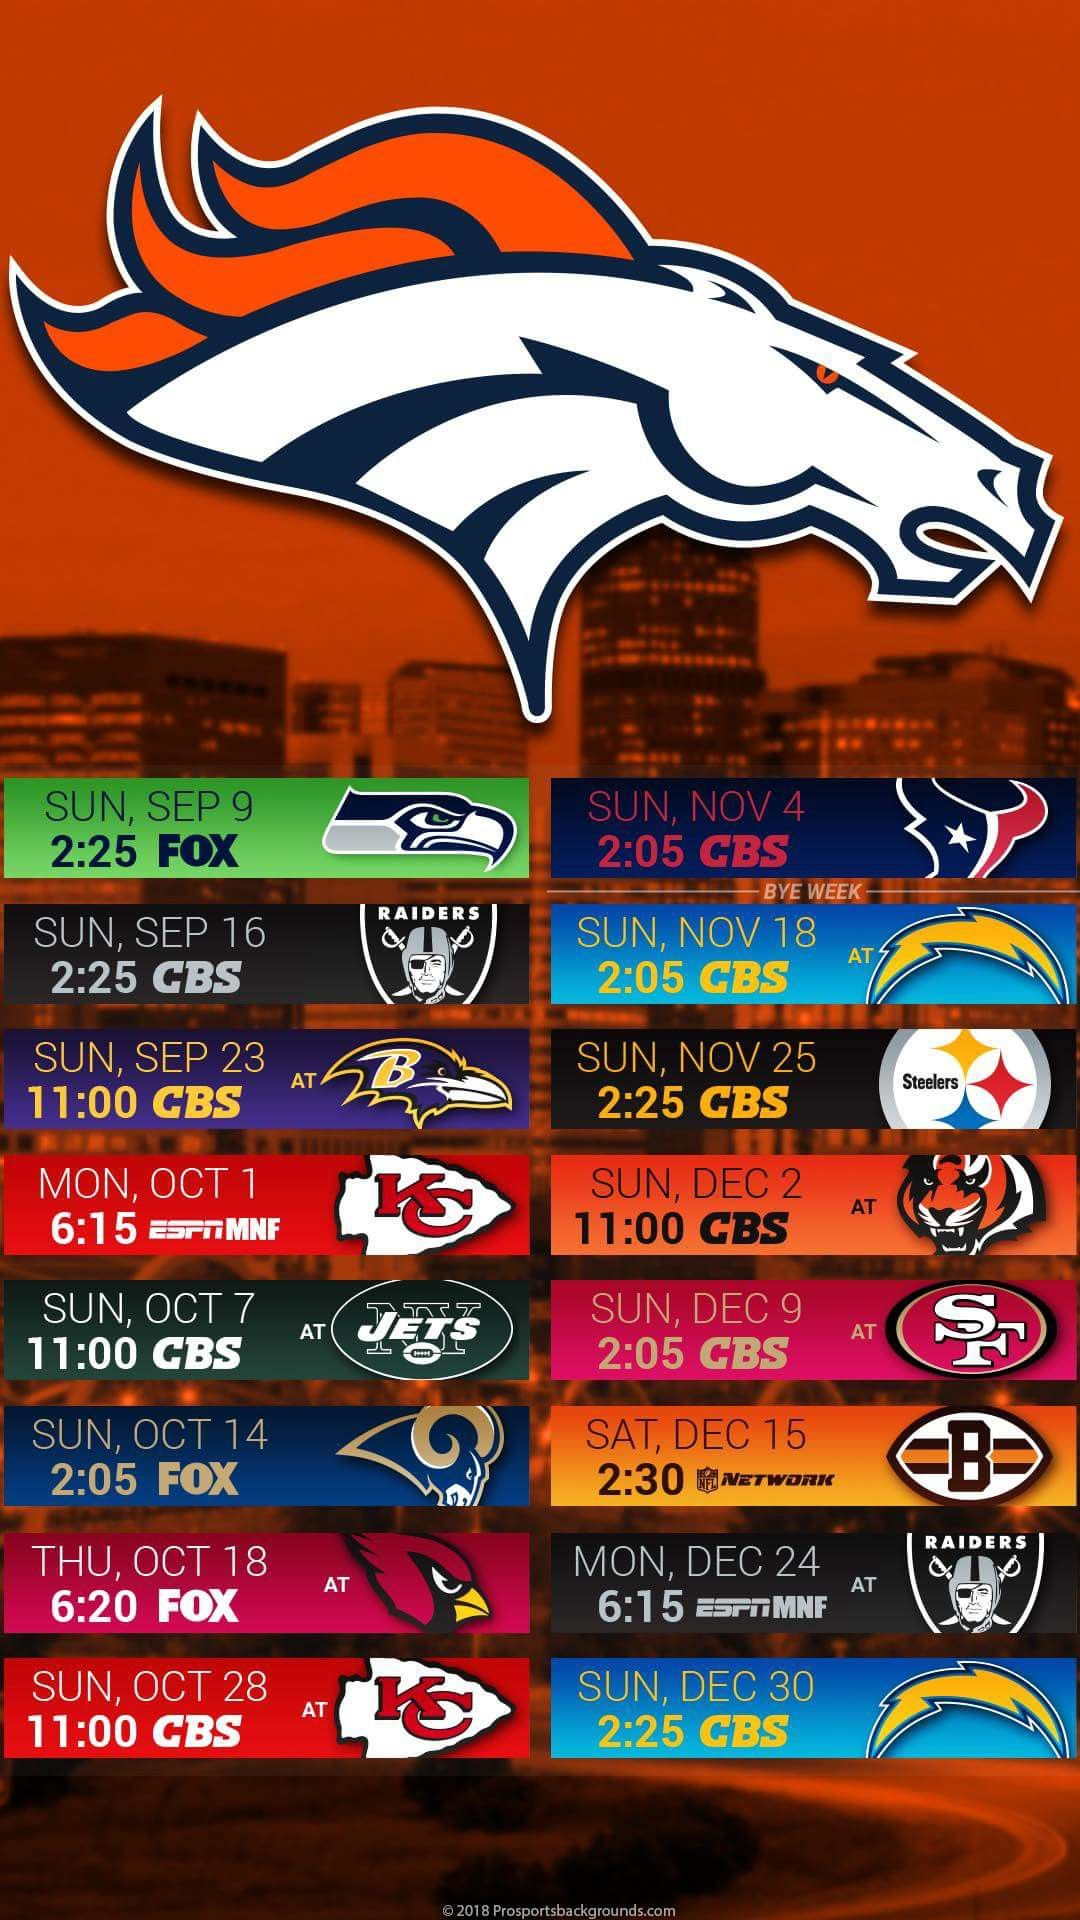 Pin By Patrick Norris On Broncos Ch Ck Denver Broncos Denver Broncos Team Denver Broncos Logo